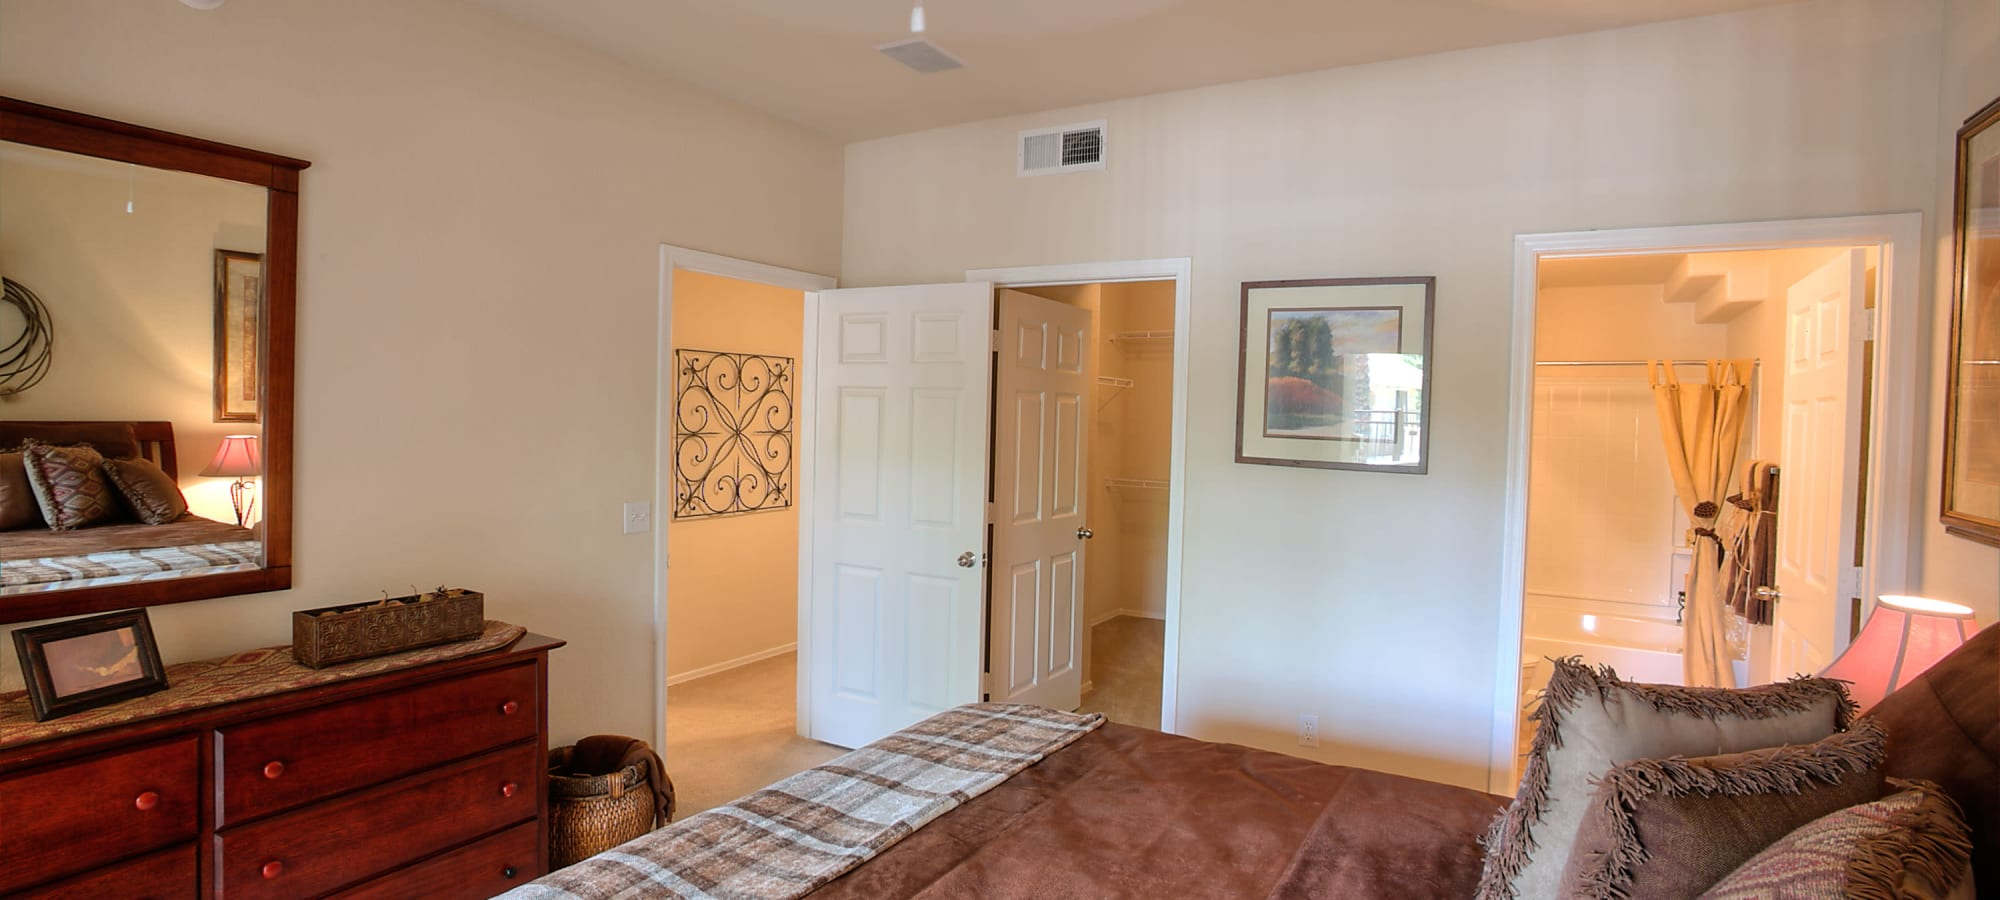 Spacious master bedroom with bathroom at Remington Ranch in Litchfield Park, Arizona